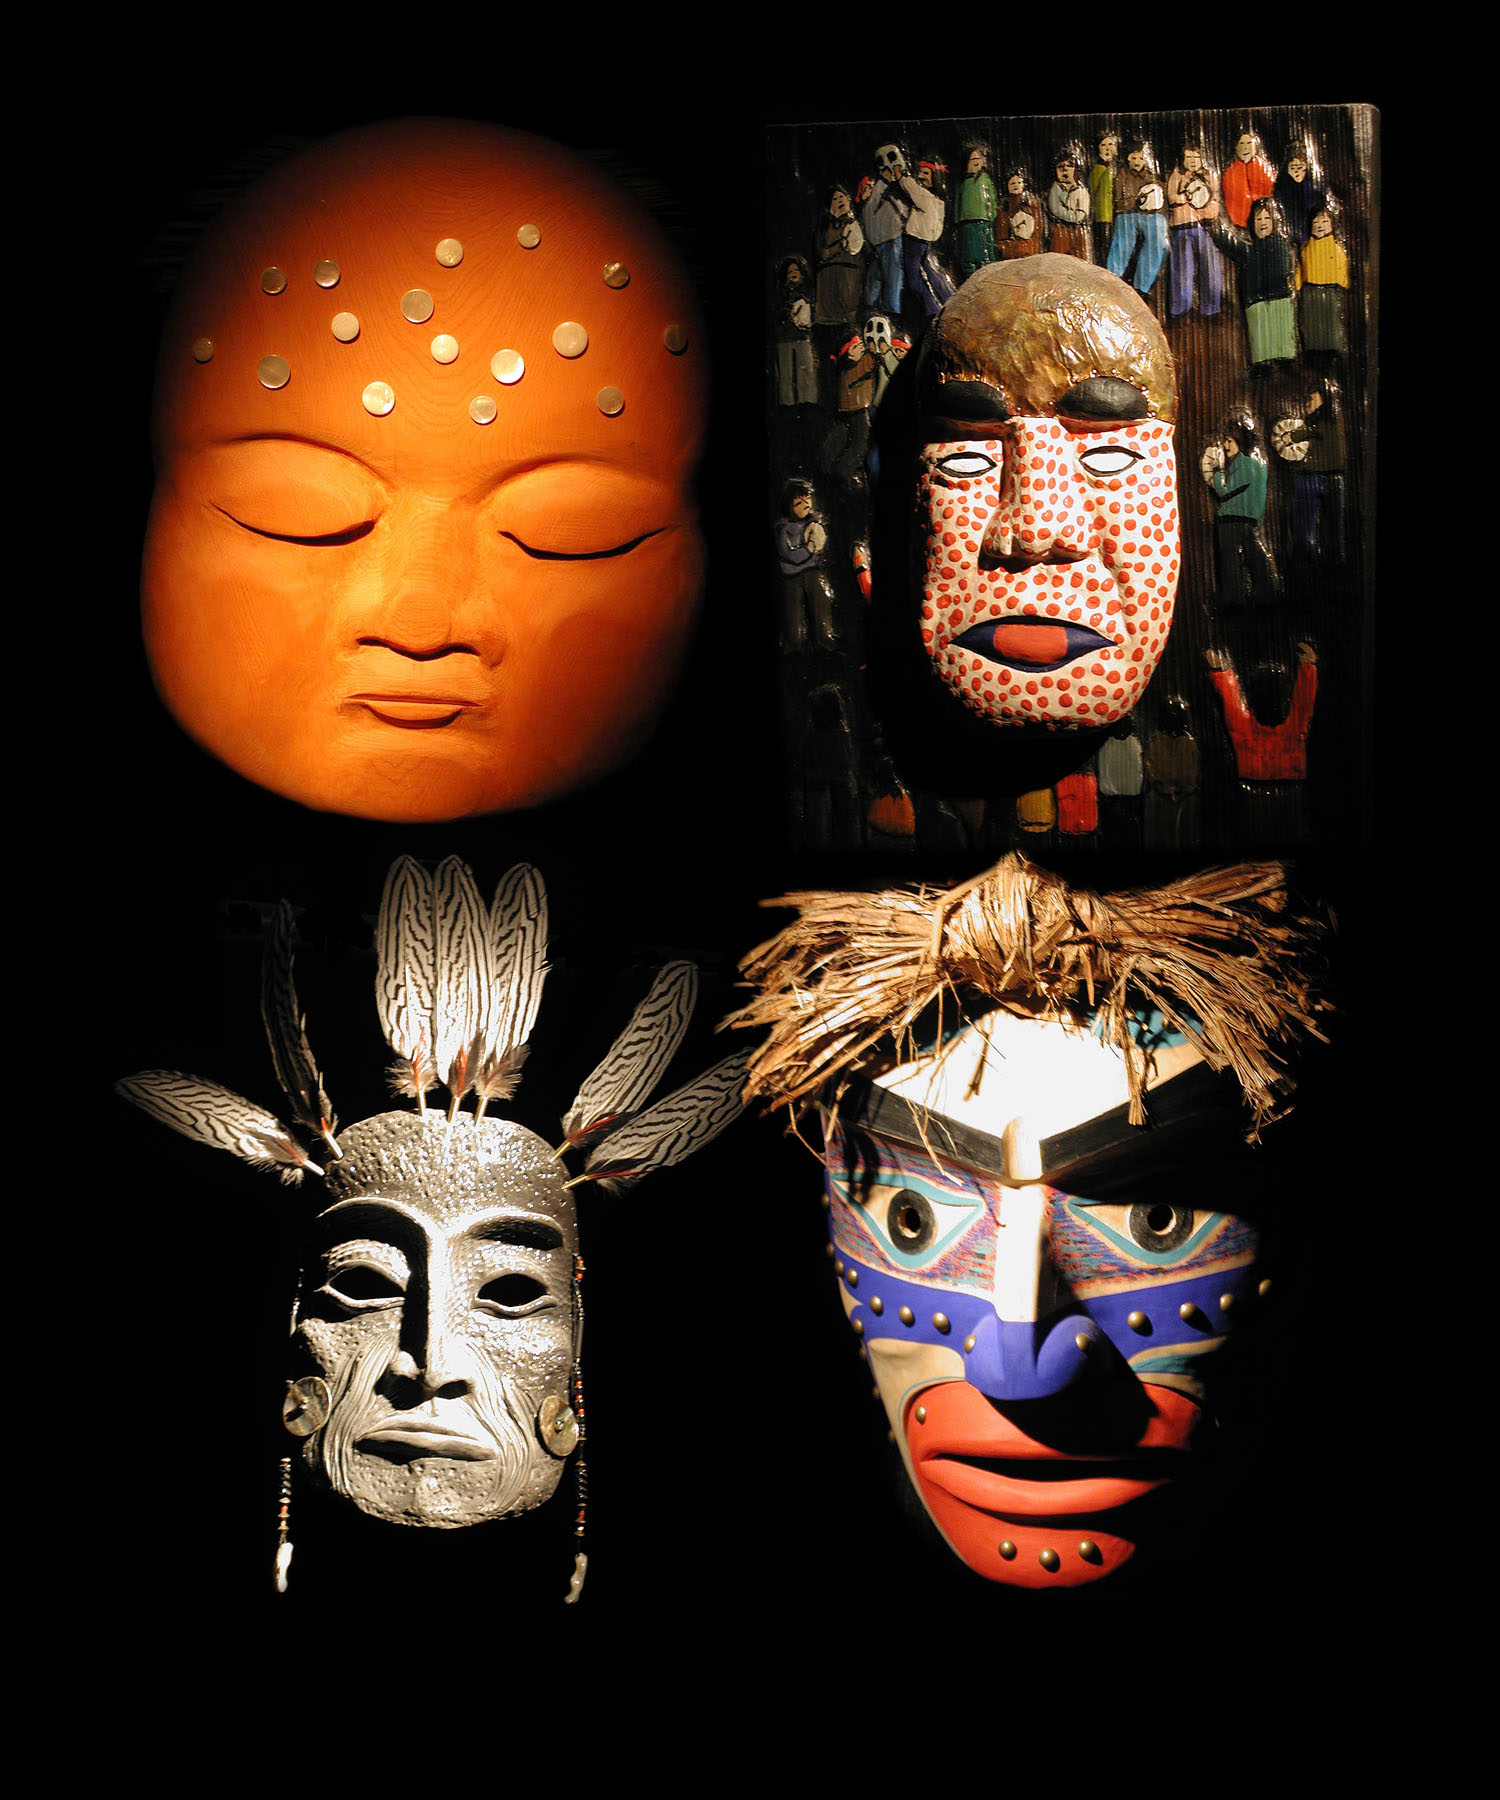 Perceptions and Stigmatization Mask Making Workshop - November 9, 2017, at Art Students League of Denver, 3-6pm. This workshop is part of the Message to Our Mothers | Mensaje a Nuestras Madres (M2M) project exploring substance use in families through storytelling and art. This workshop is being taught by Sandy Caes. For more information click here.